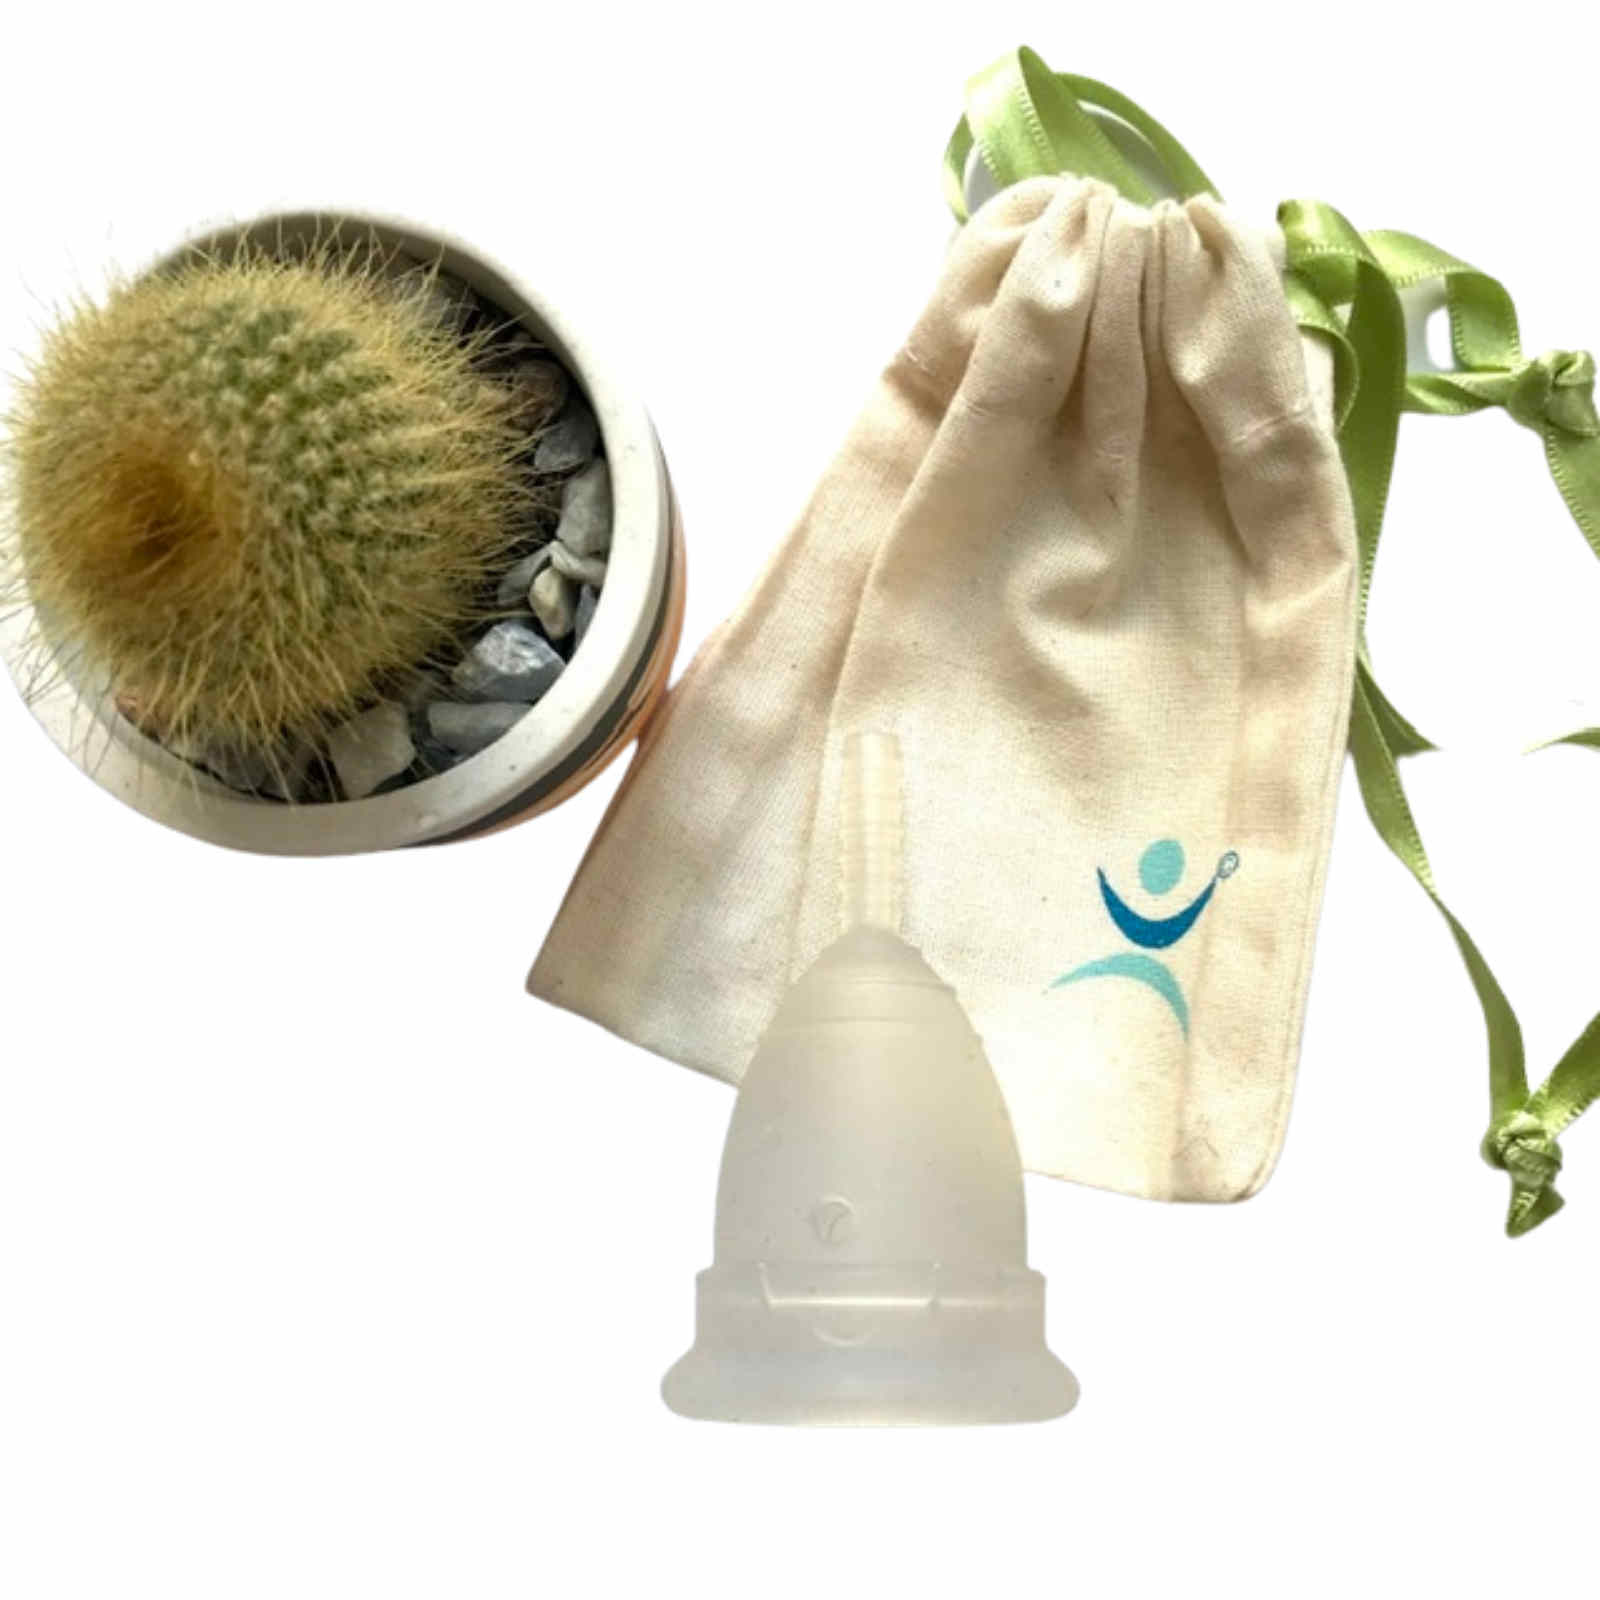 Product image for mooncup reusable menstrual cup with bag